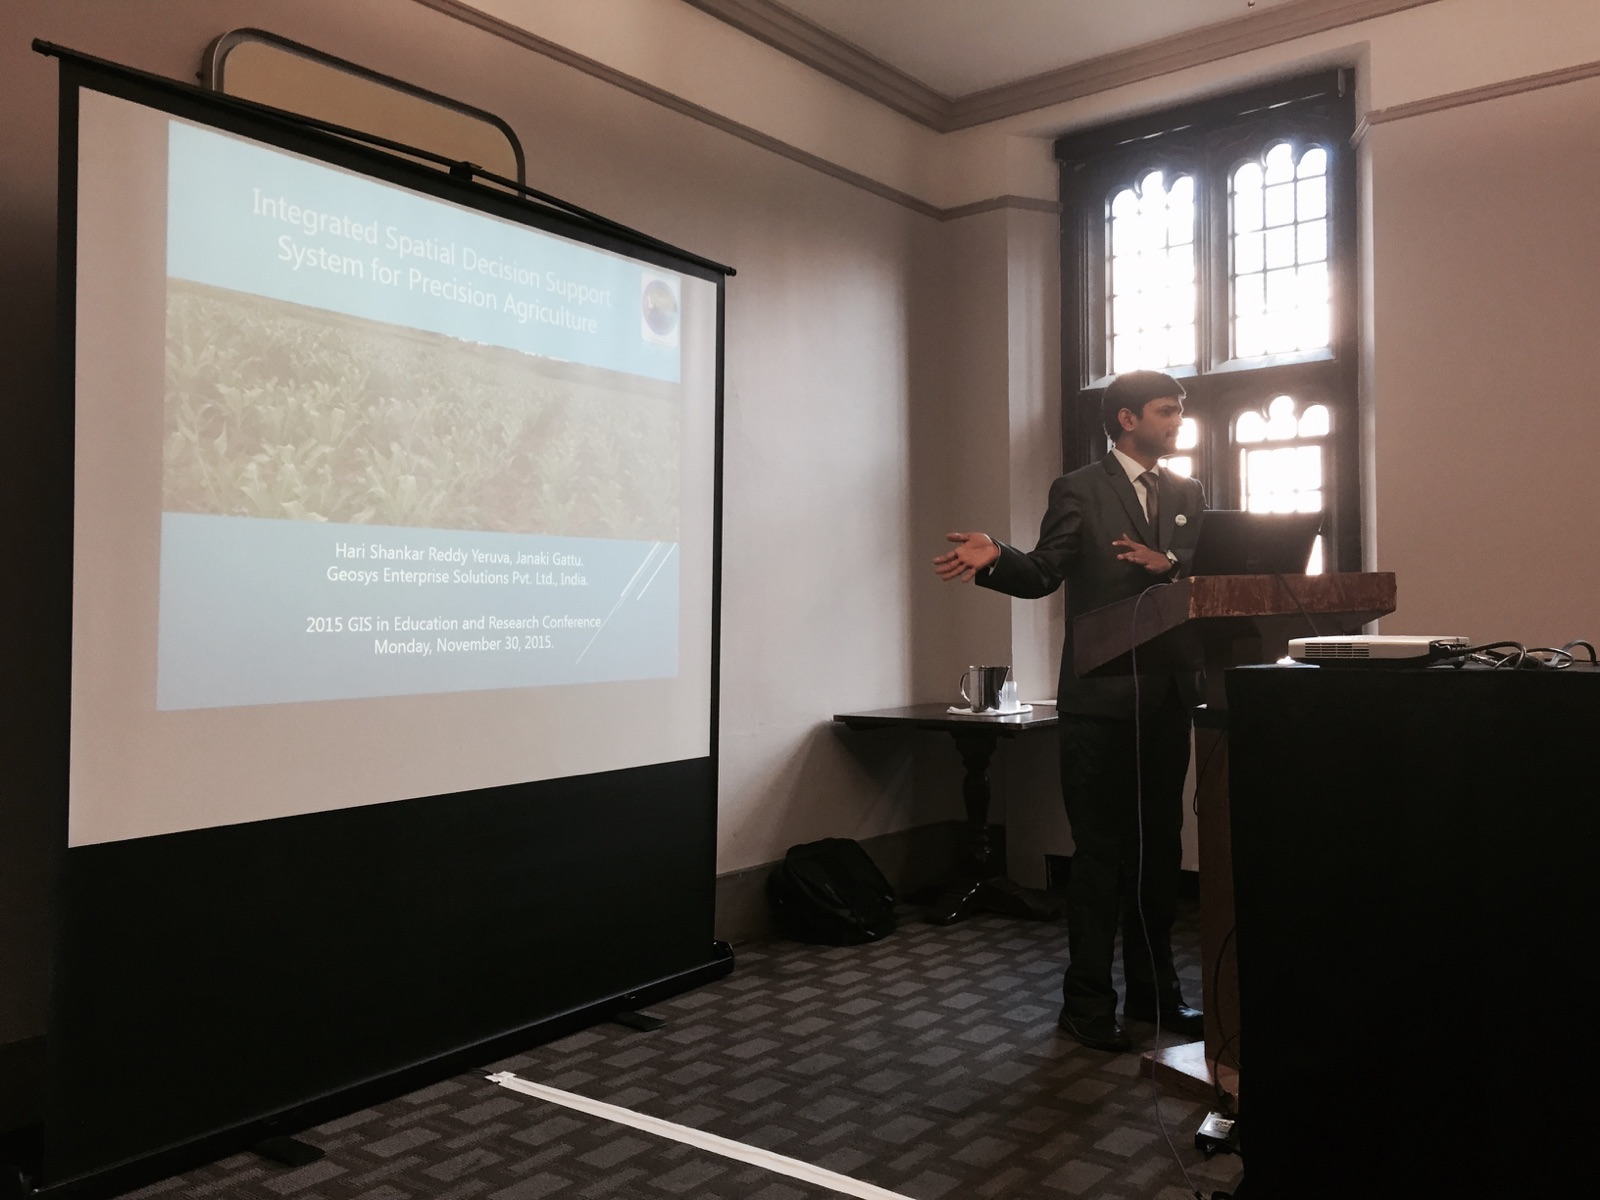 Michael Goodchild at GIS in Education and Research Conference